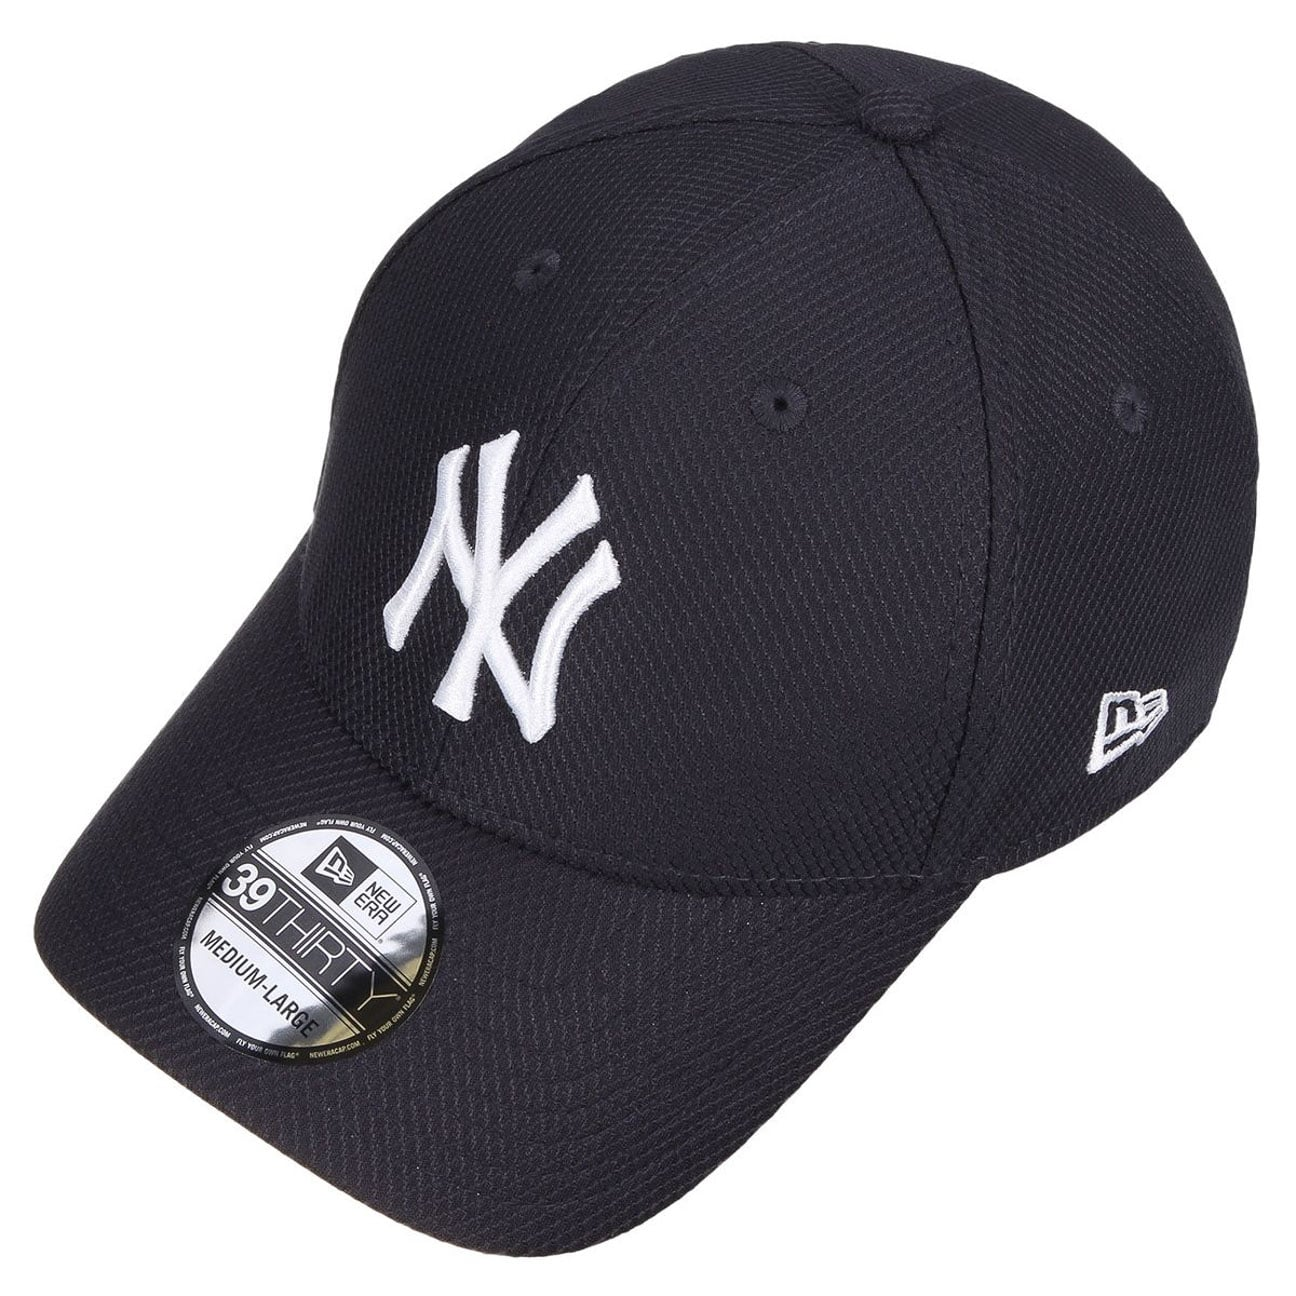 mlb diamond stretch ny basecap by new era 26 95. Black Bedroom Furniture Sets. Home Design Ideas